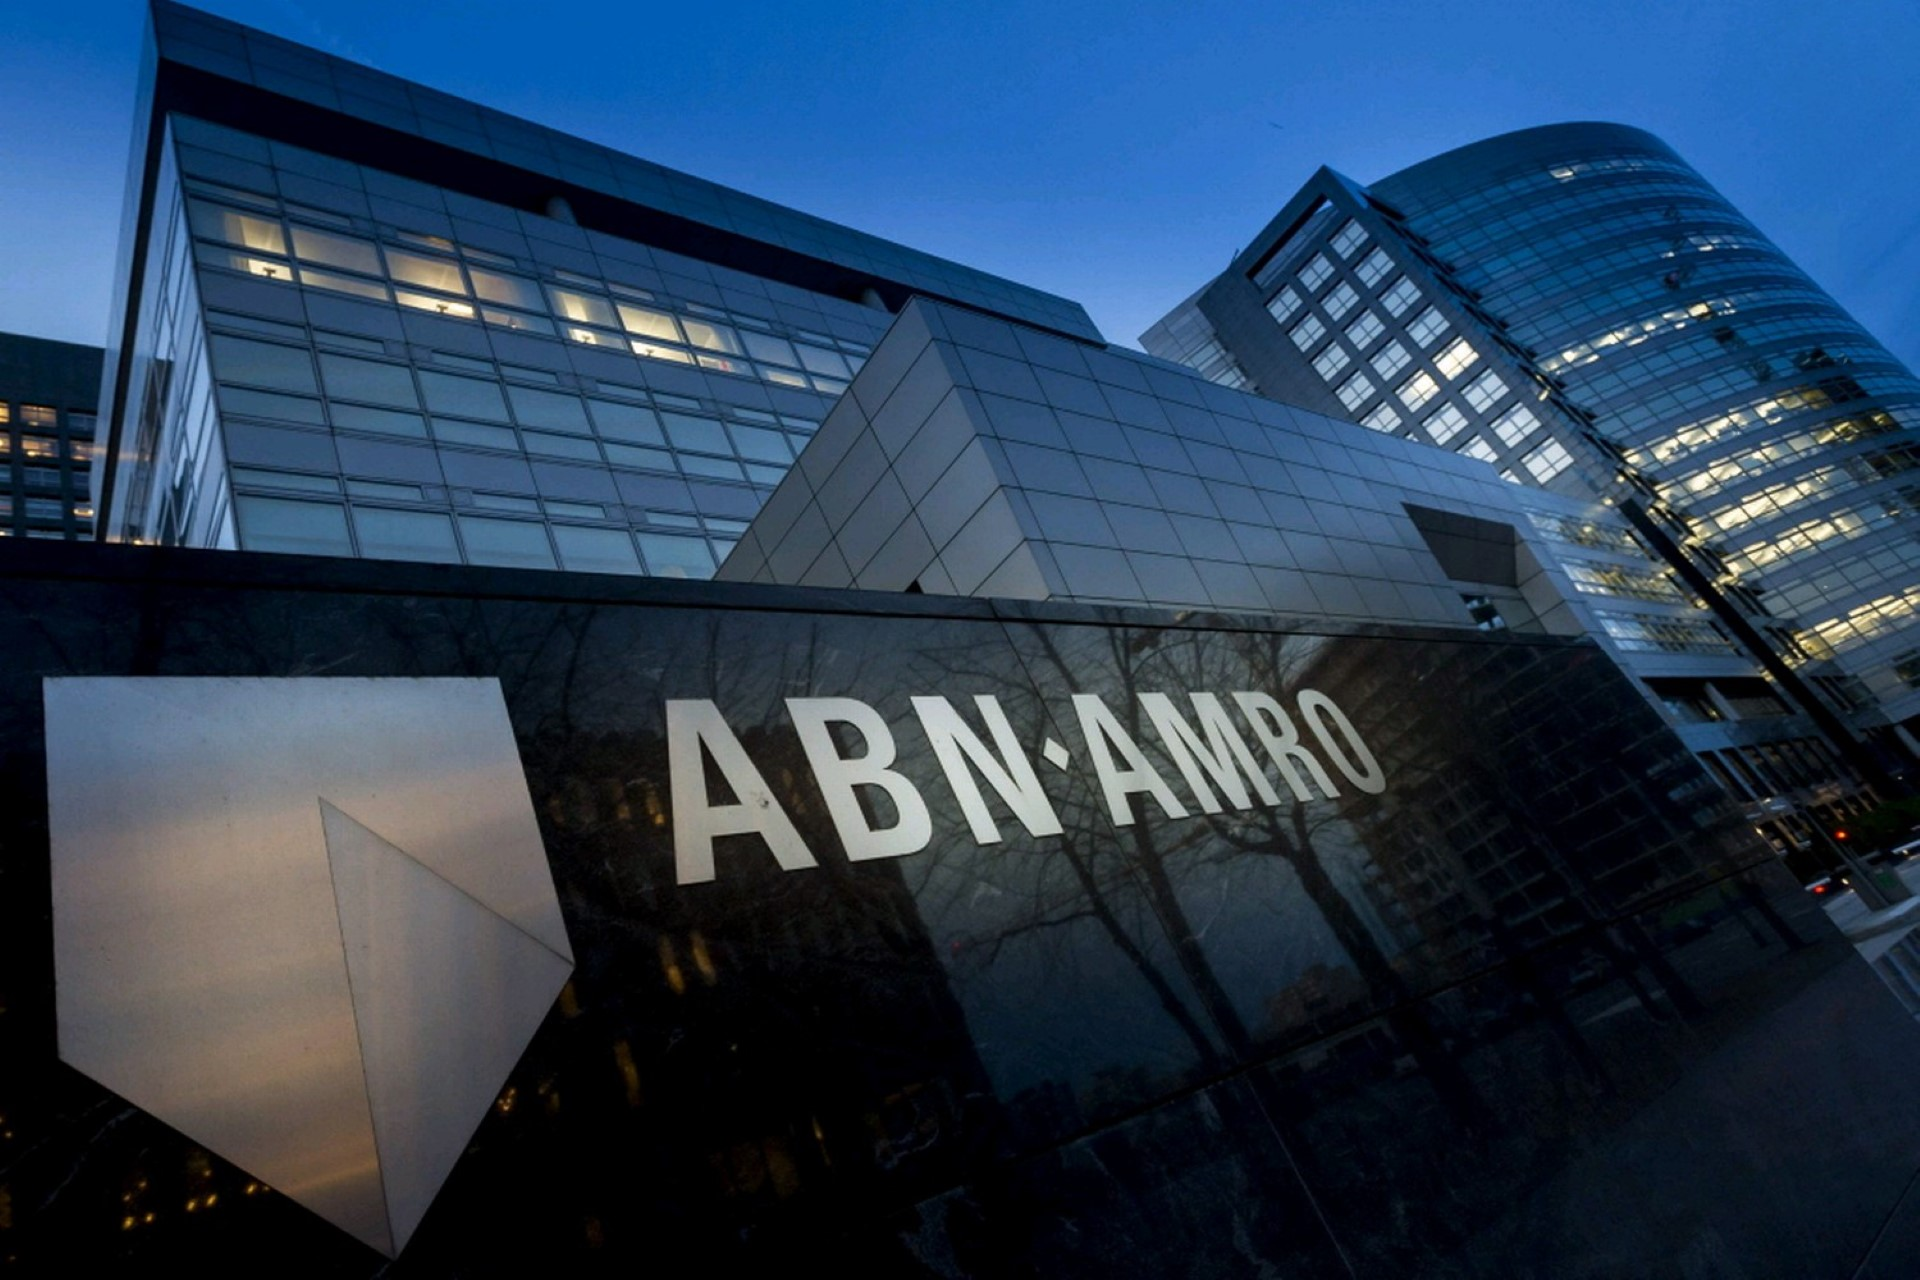 Commercial bank ABN AMRO front